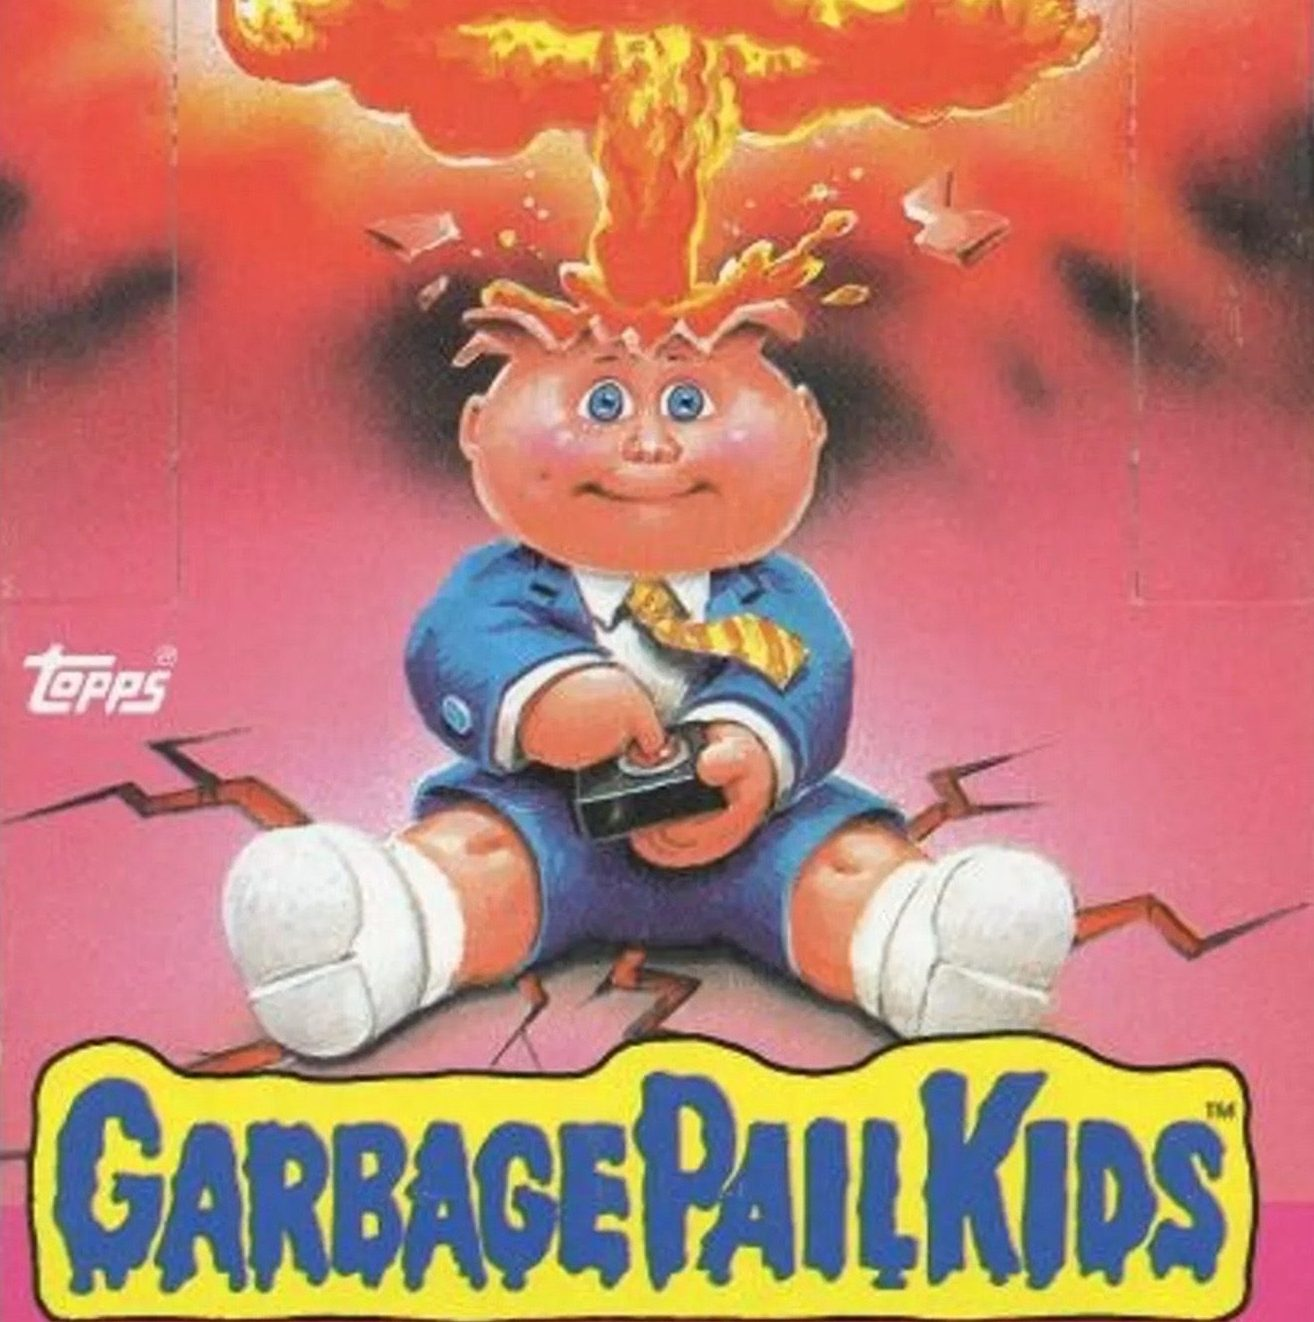 Original Box of 1985 Series 1 Garbage Pail Kids Cards e1599476419341 20 Popular TV Shows That Were Cancelled Due To Controversy